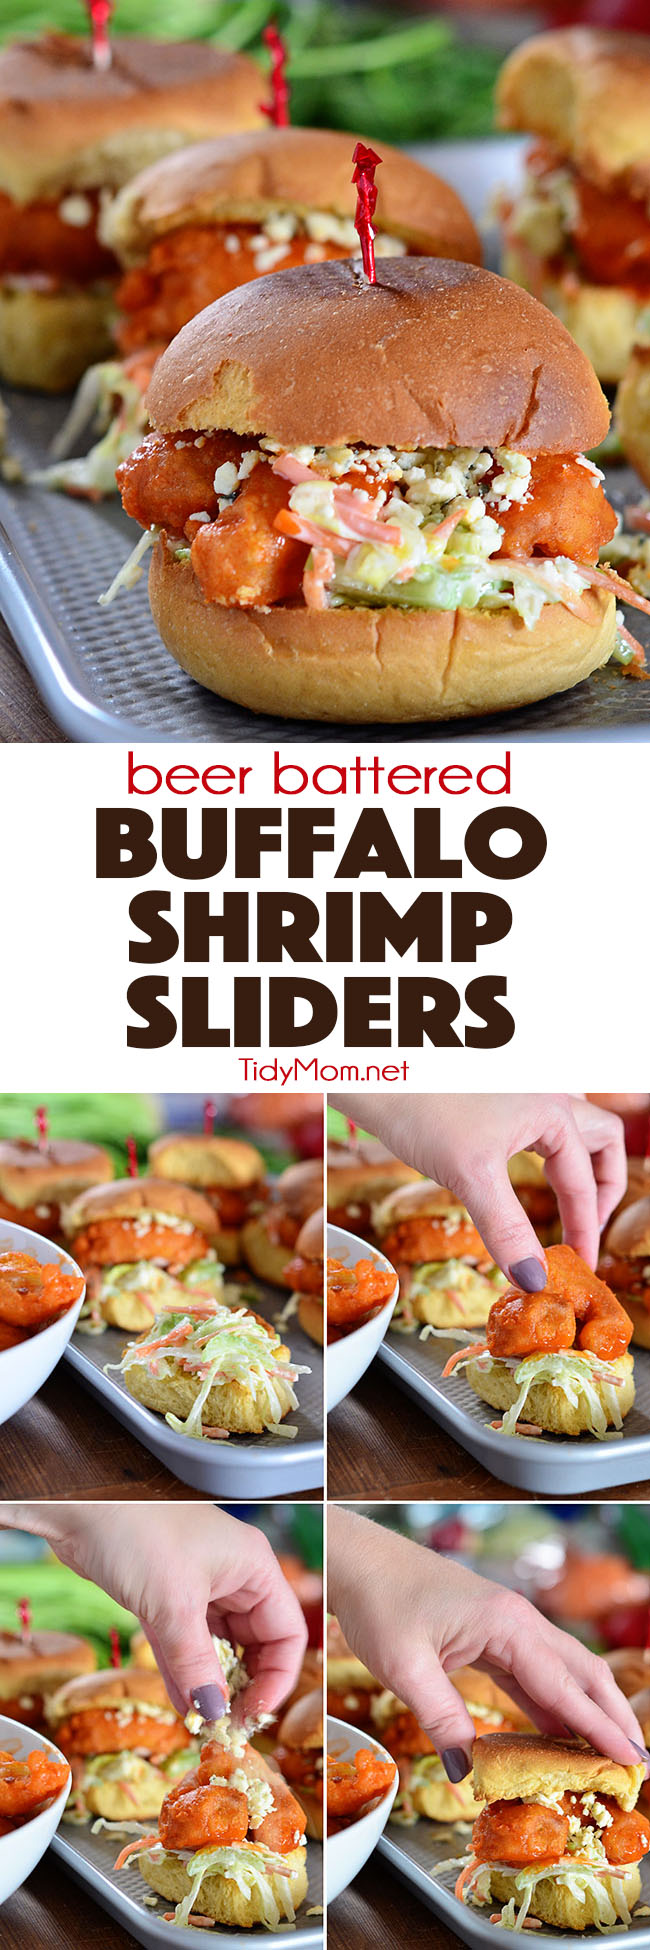 Perfectly crunchy BEER BATTERED BUFFALO SHRIMP SLIDERS are insanely delicious and pack a lot of flavor in every bite.   Serve as a fun family meal or as an appetizer at your next party. Print the full recipe at TidyMom.net #shrimp #sliders #sandwiches #buffalo